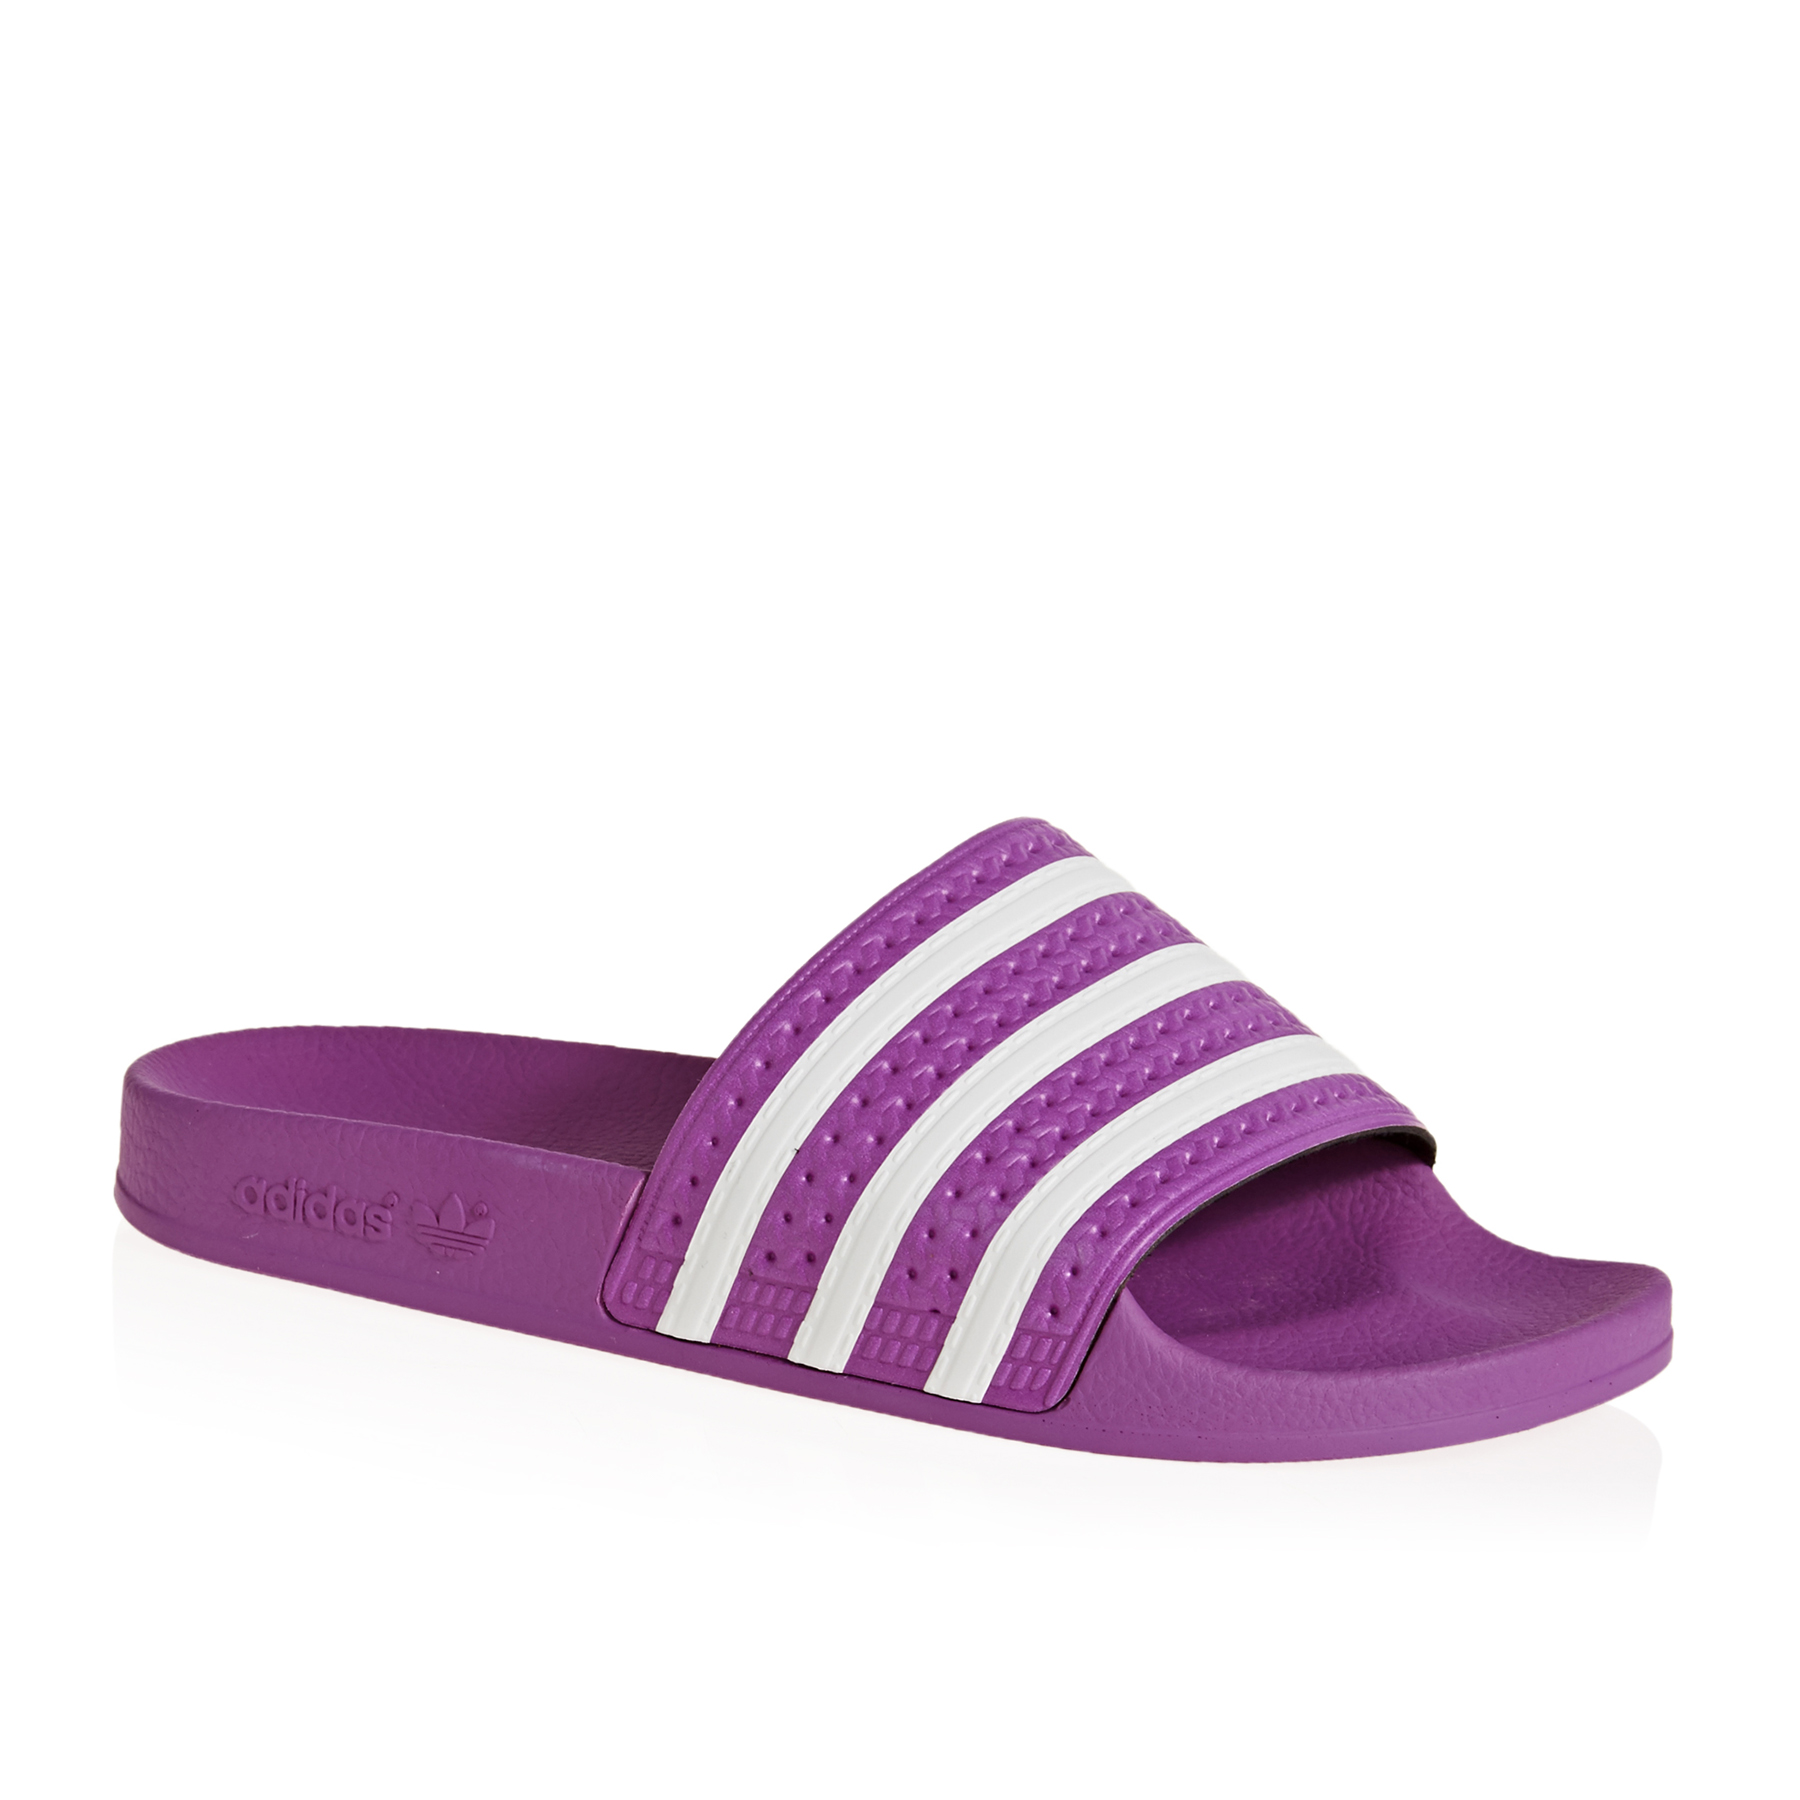 Adidas Women's Adilette Slides in Vivid Pink Cloud White